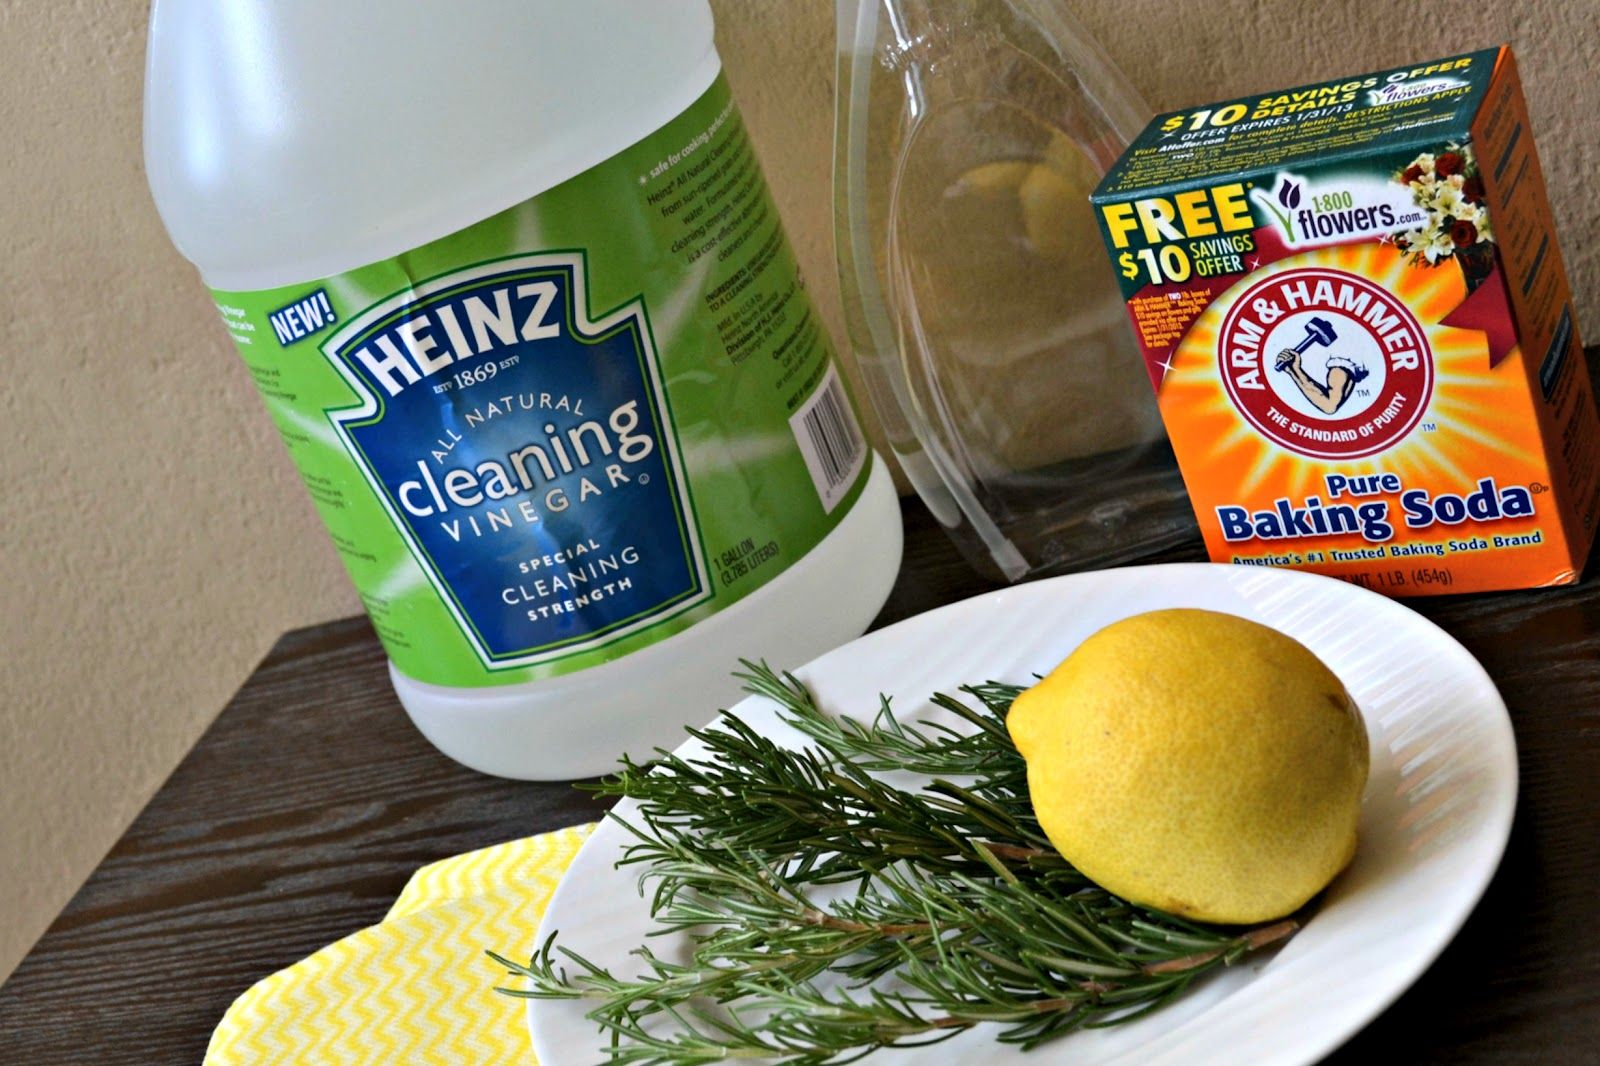 Chemical Free Toy Cleaning? Yes, Please Cleaning toys